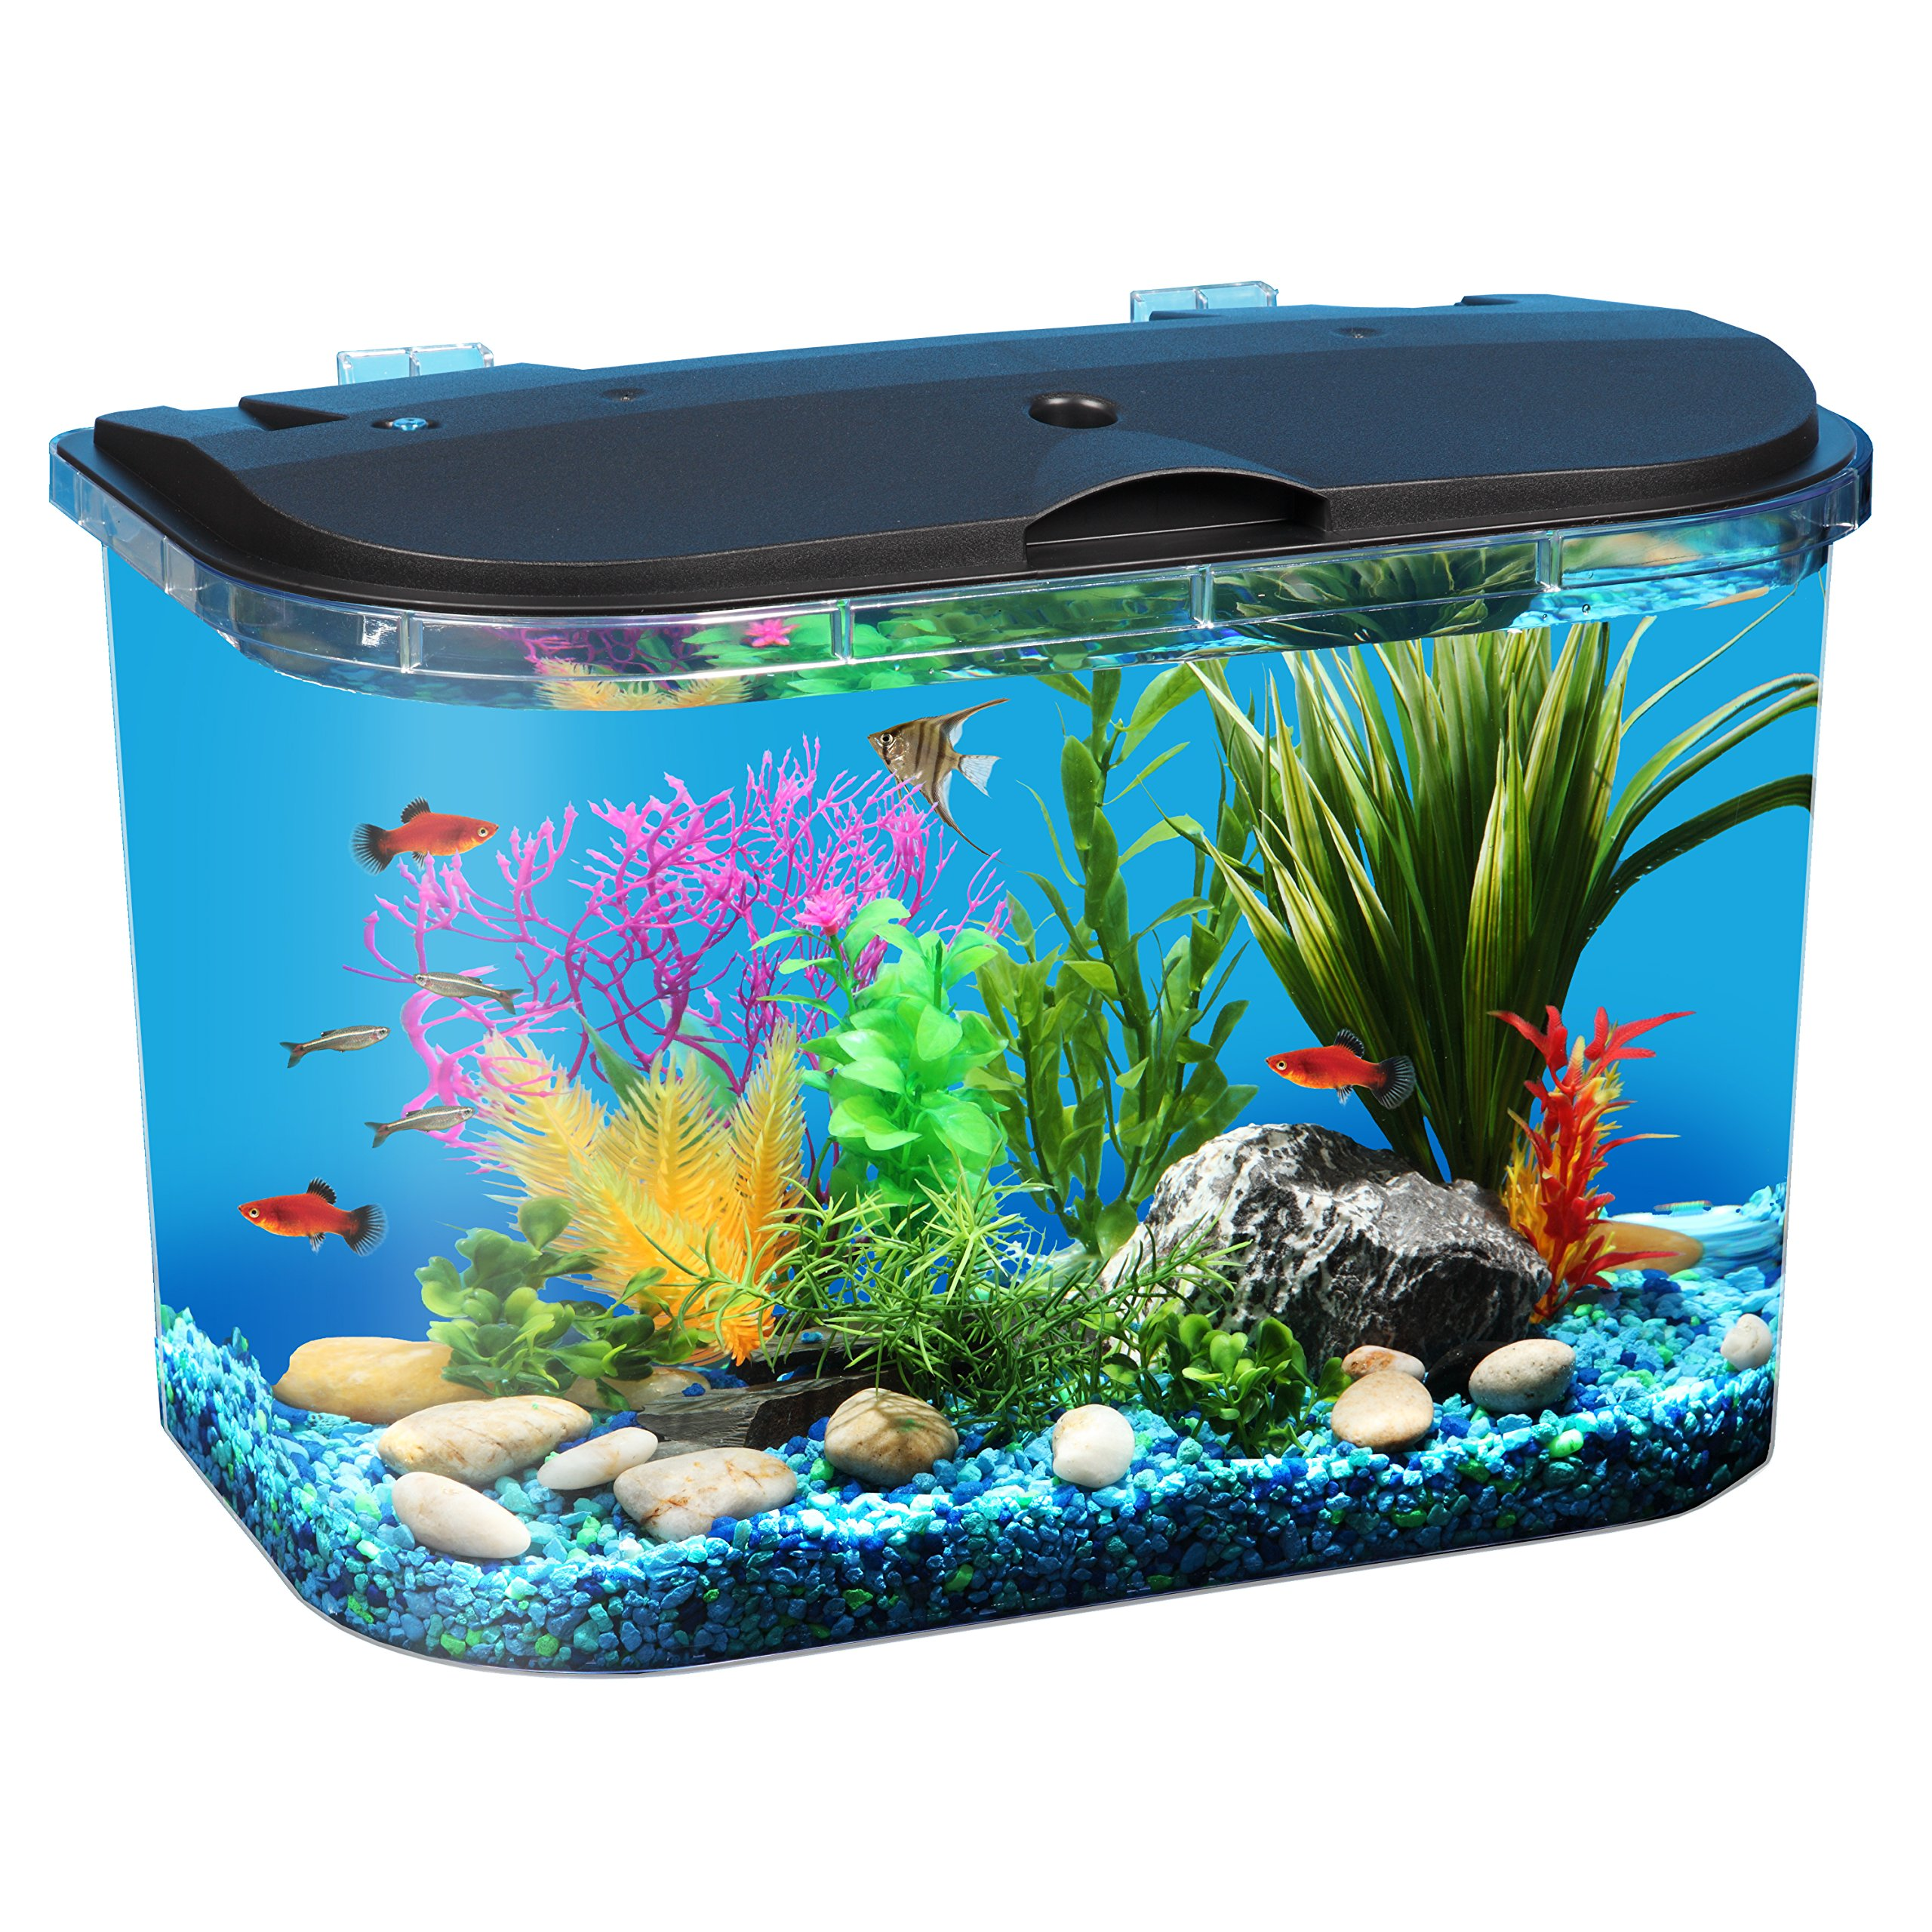 Koller Products Panaview 5 gallon Aquarium Kit with LED Lighting & Power Filter - AP15005FFP by Koller Products